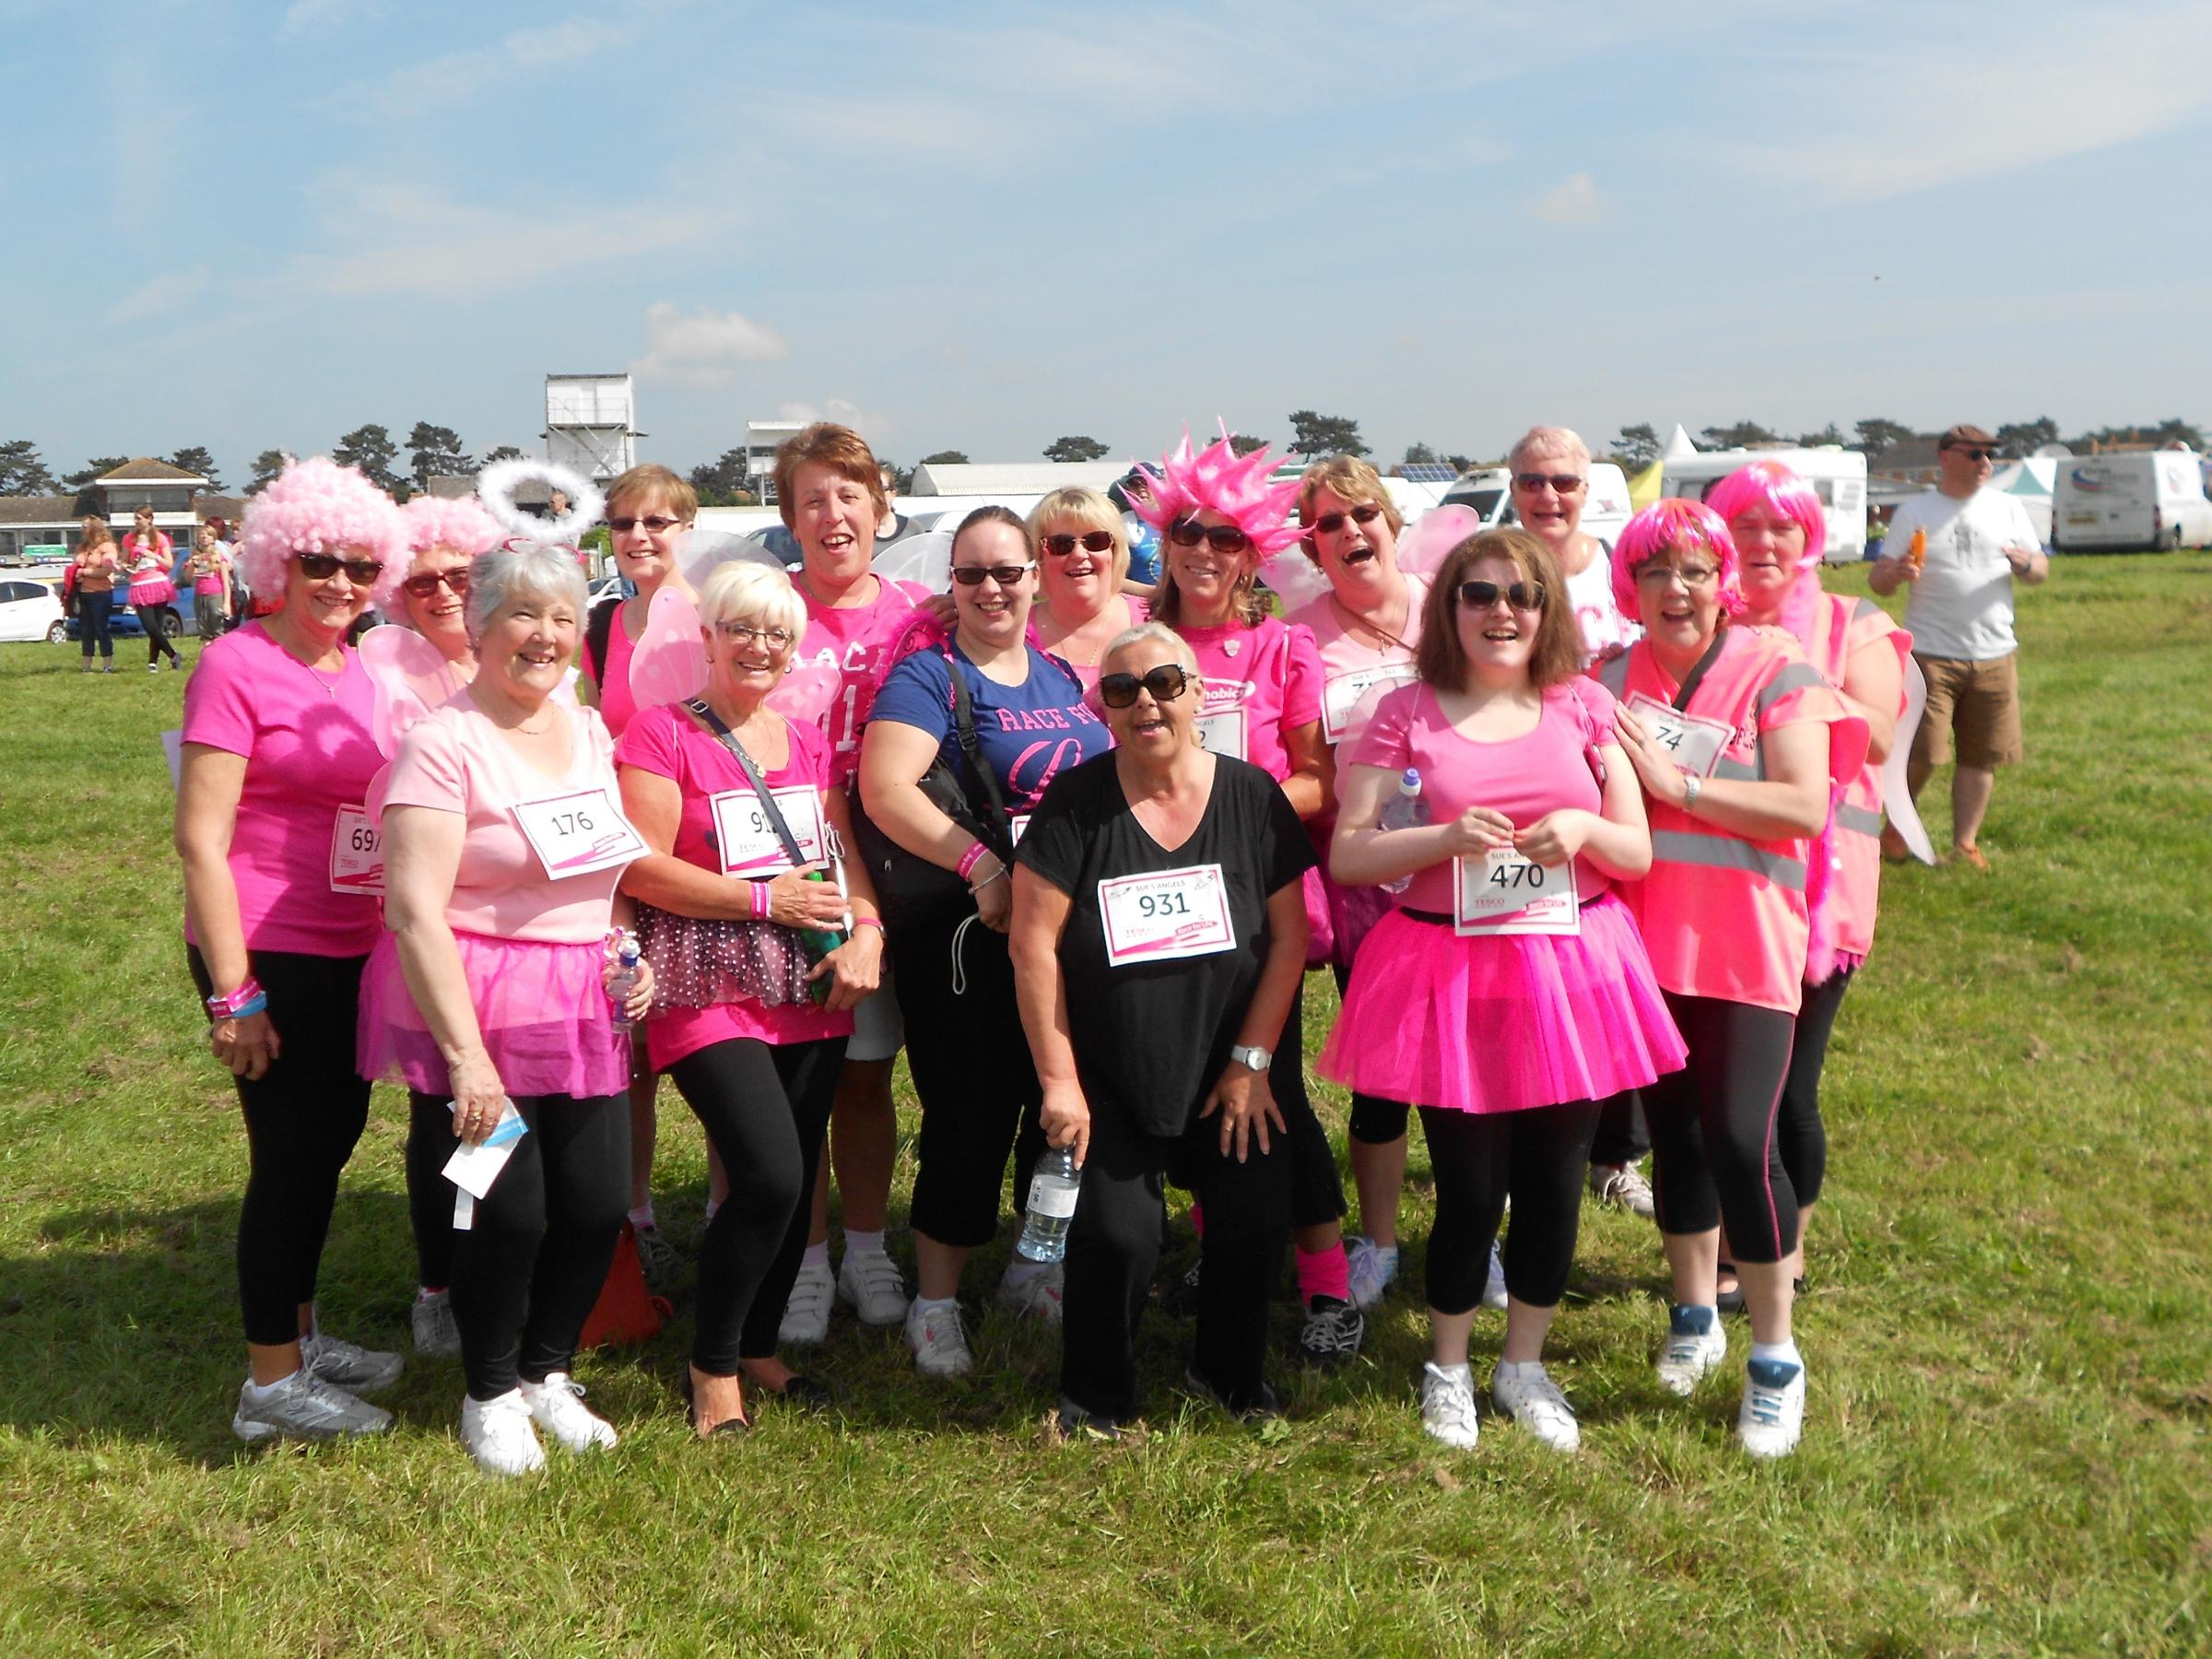 Sue's Angels raised £1,080 racing in Stratford Upon Avon. SP